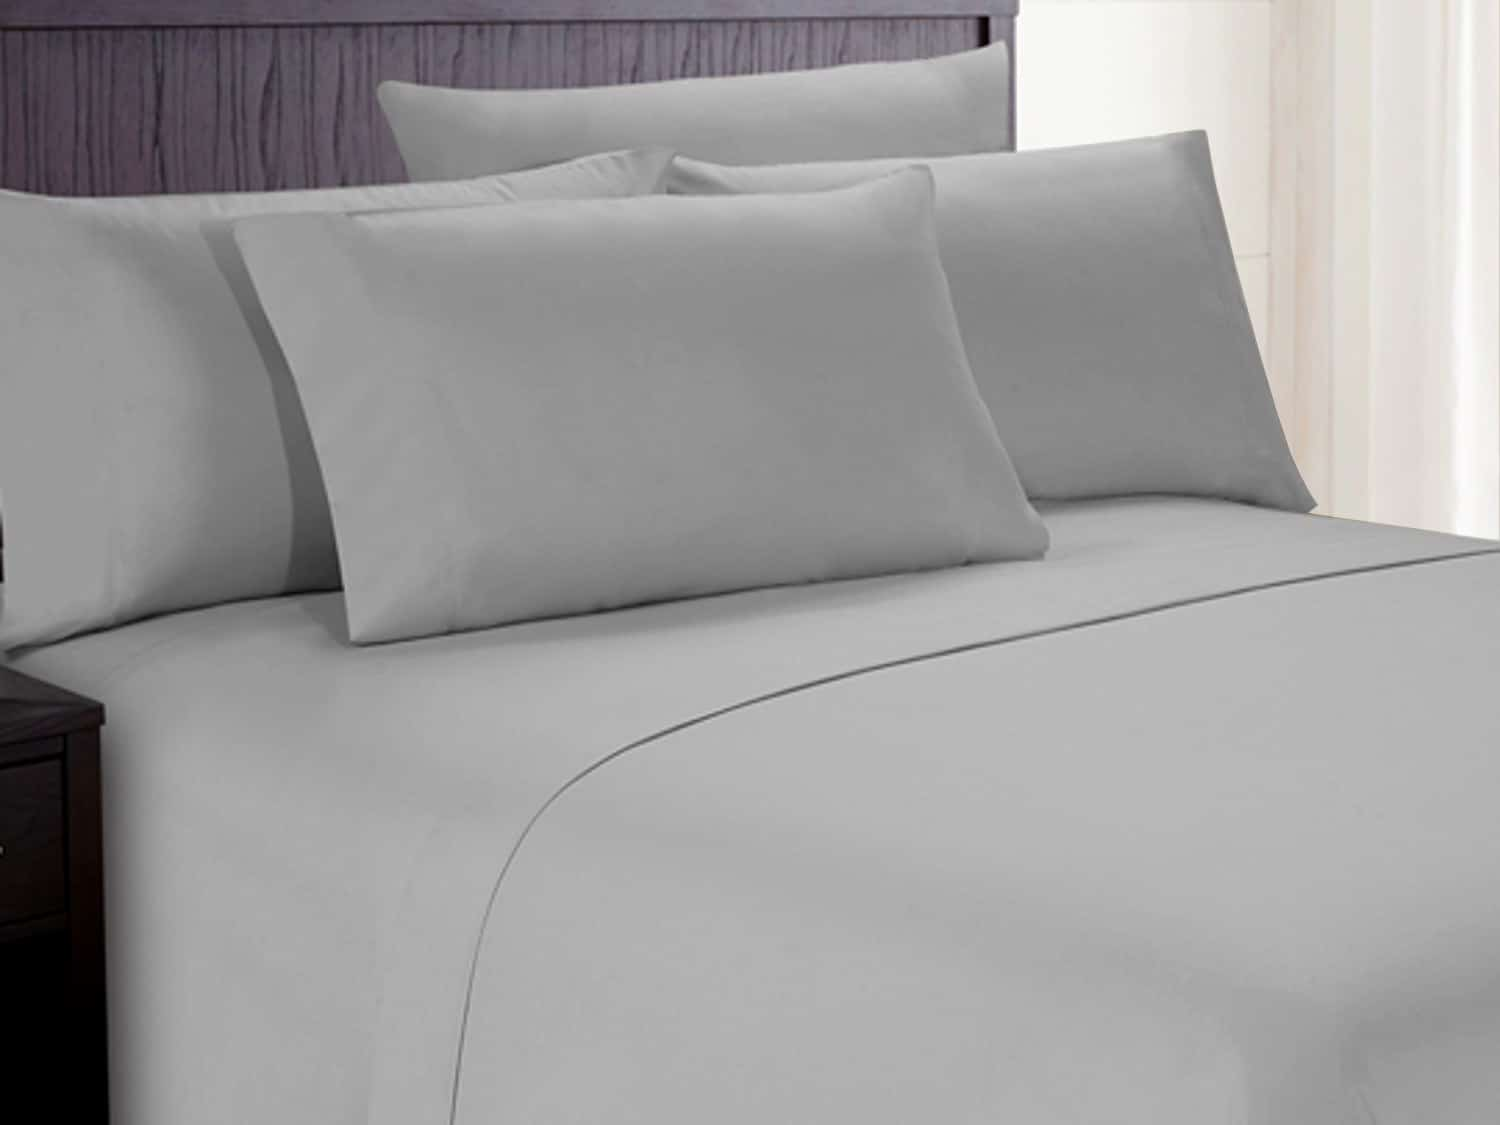 Picture of: Deep Pocket 100 Cotton Sheets With Corner Straps